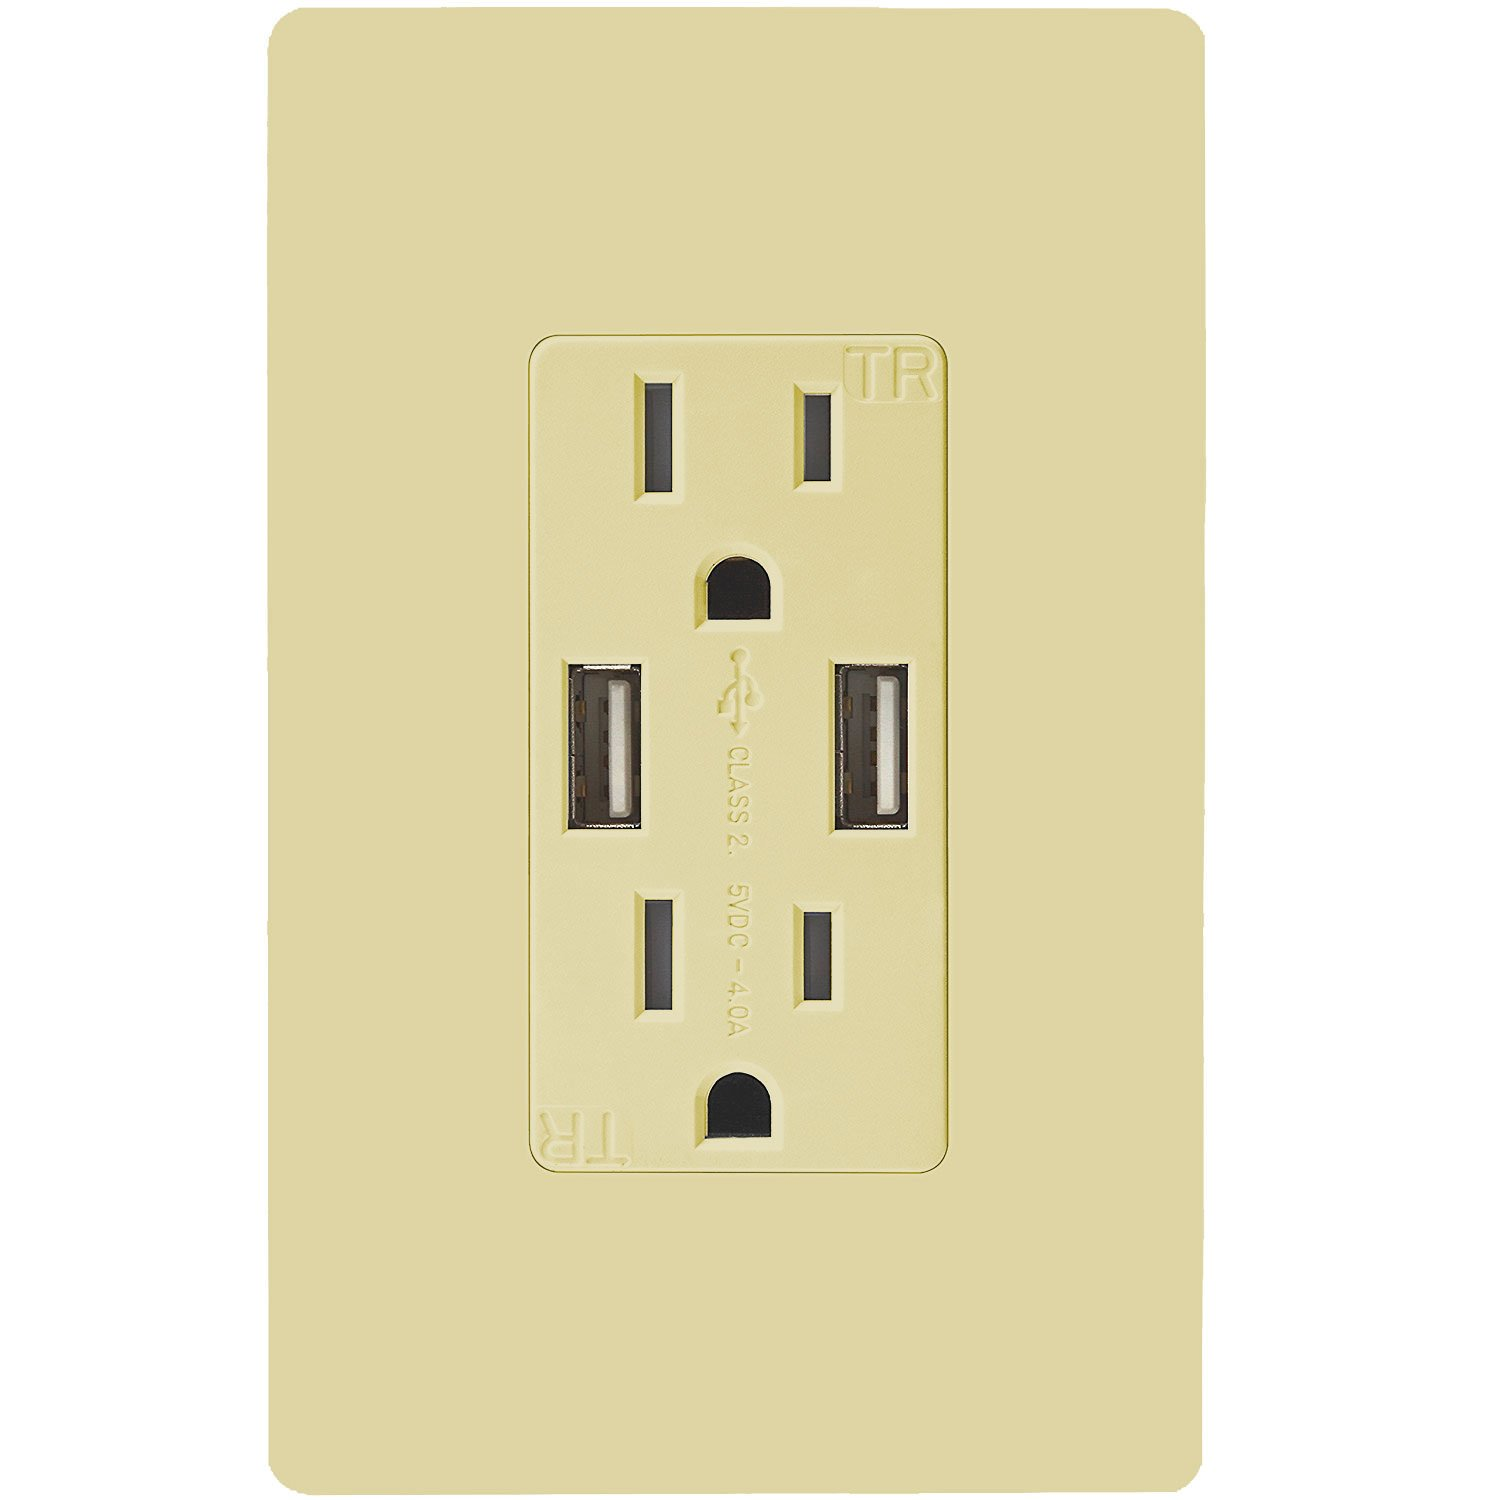 TOPGREENER TU2154A 4A High Speed Dual USB Charger Outlet 15A Tamper Resistant Receptacle & 2 Free Wall Plates, Ivory